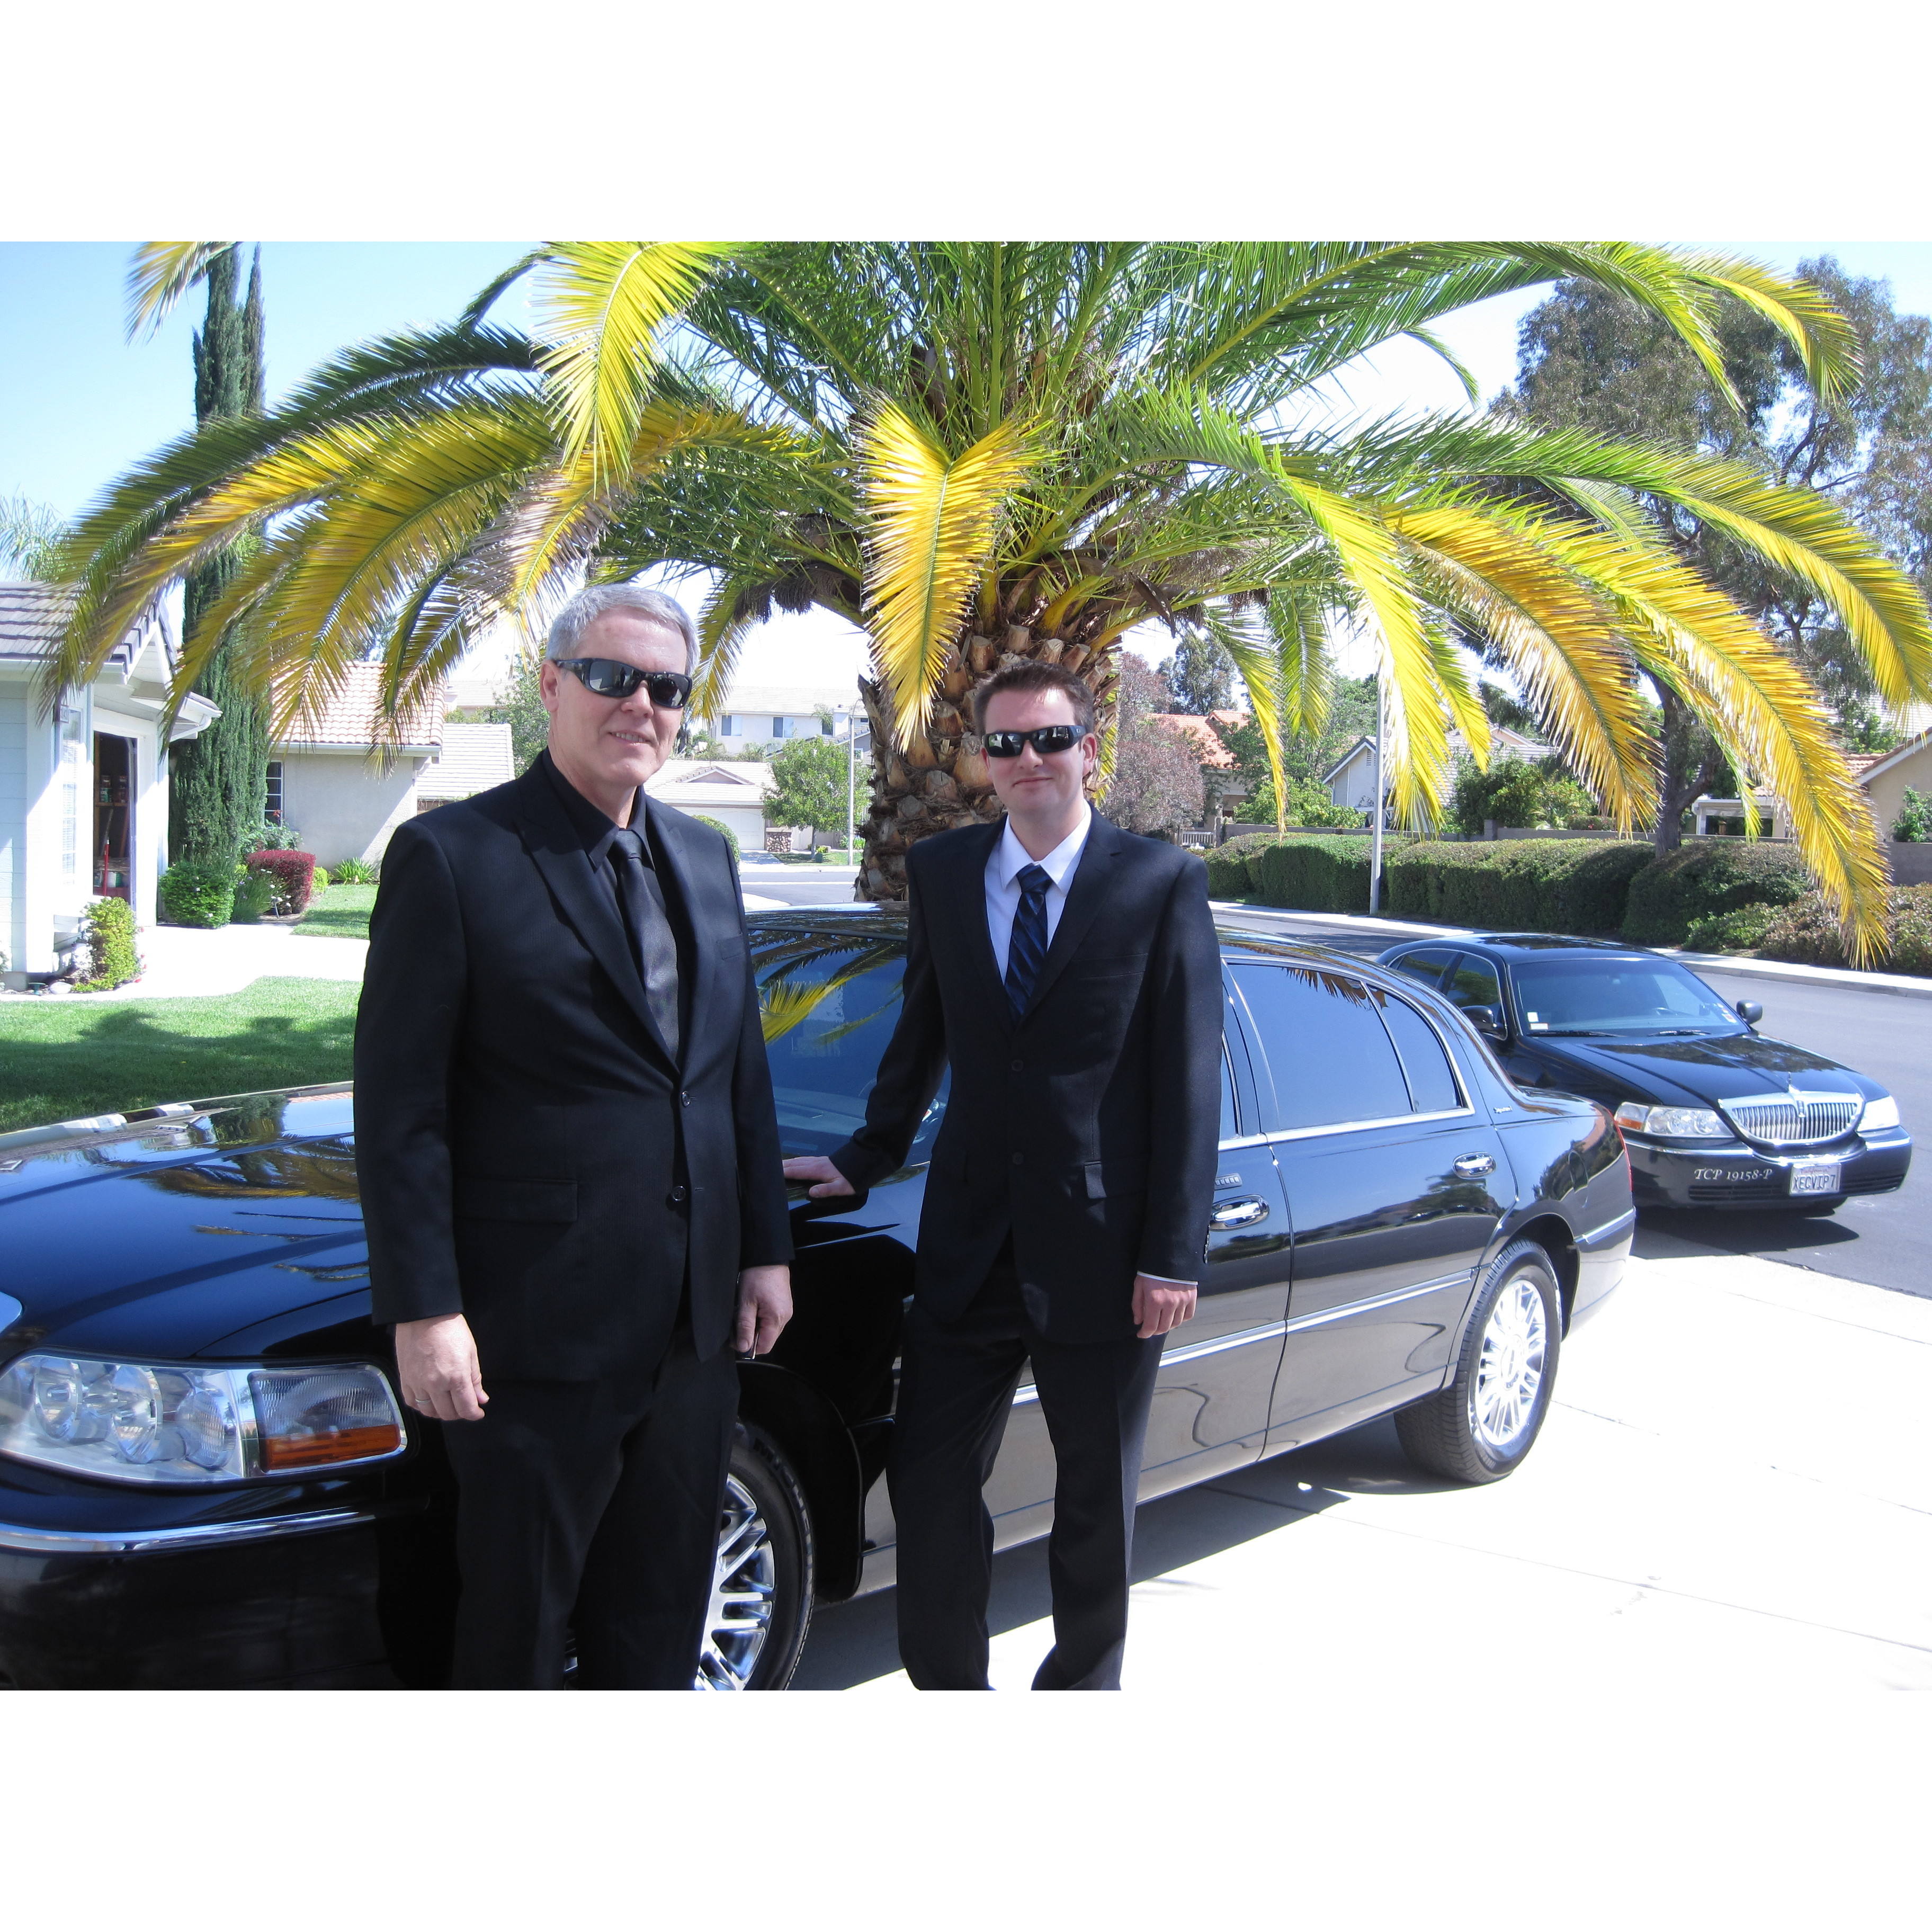 Executive VIP Shuttle Transportation - Temecula, CA - Taxi Cabs & Limo Rental